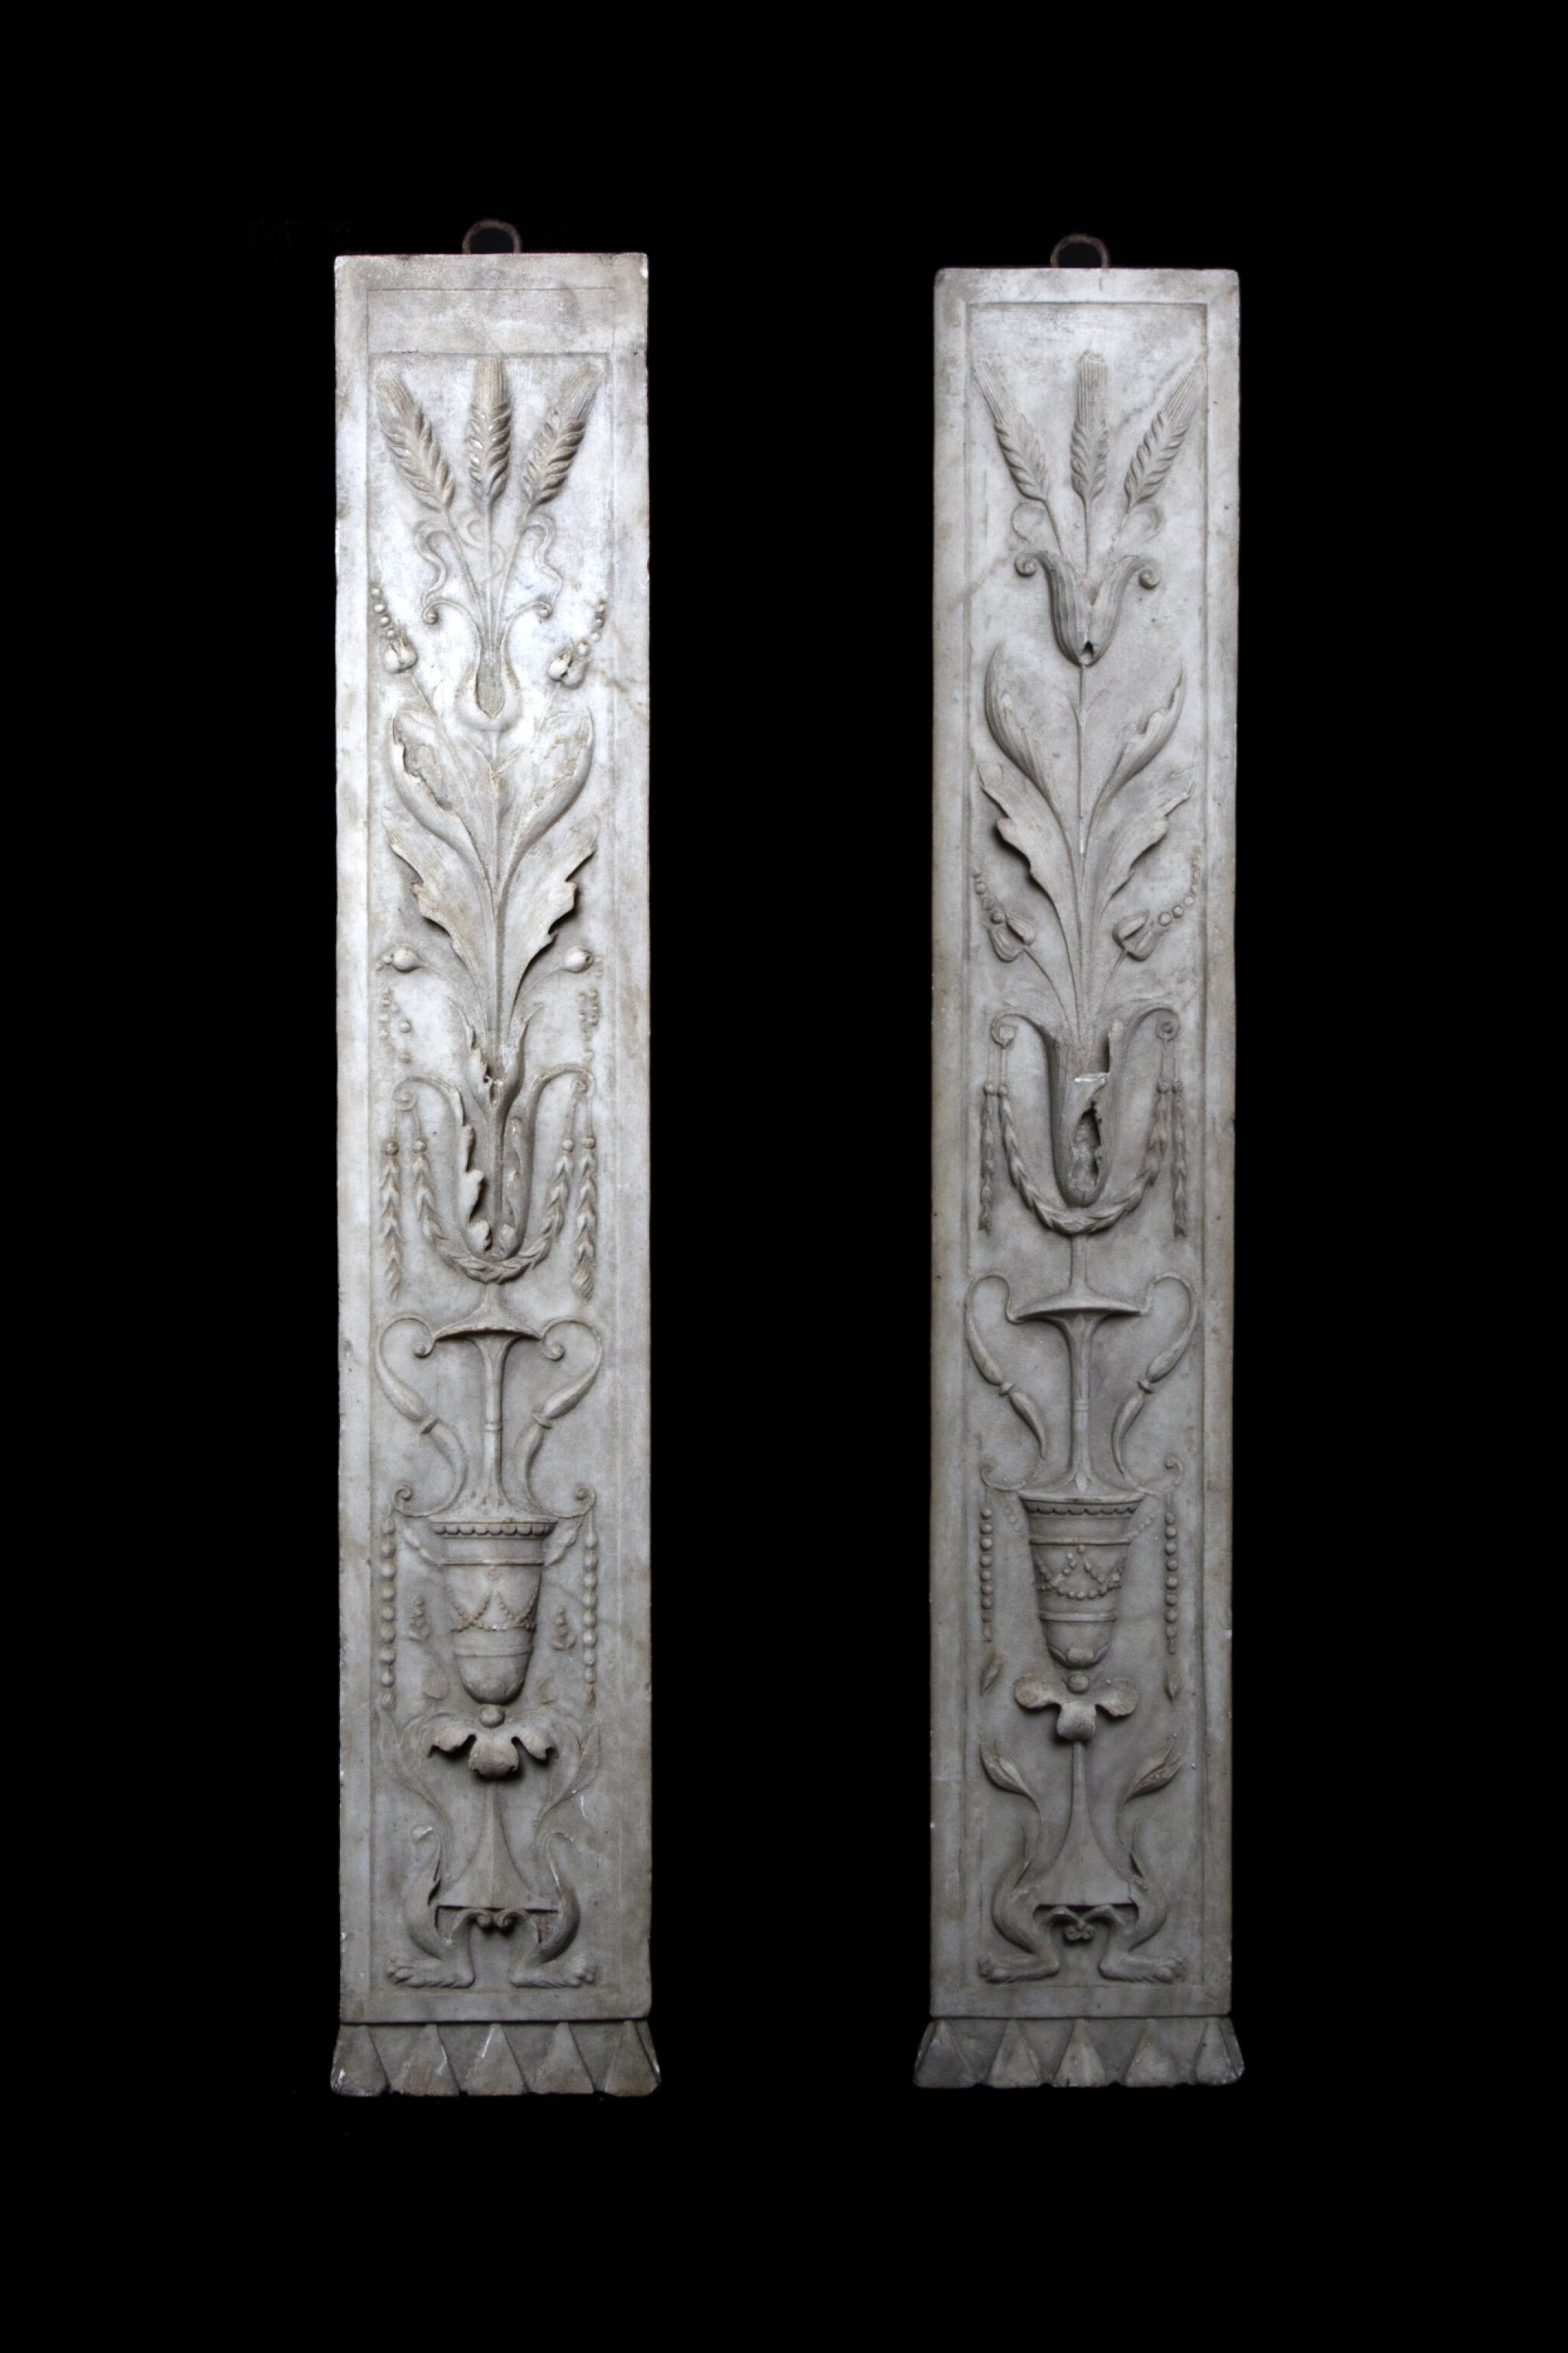 View 1 of Lot 127. Italian, 16th century | Pair of Pilasters.